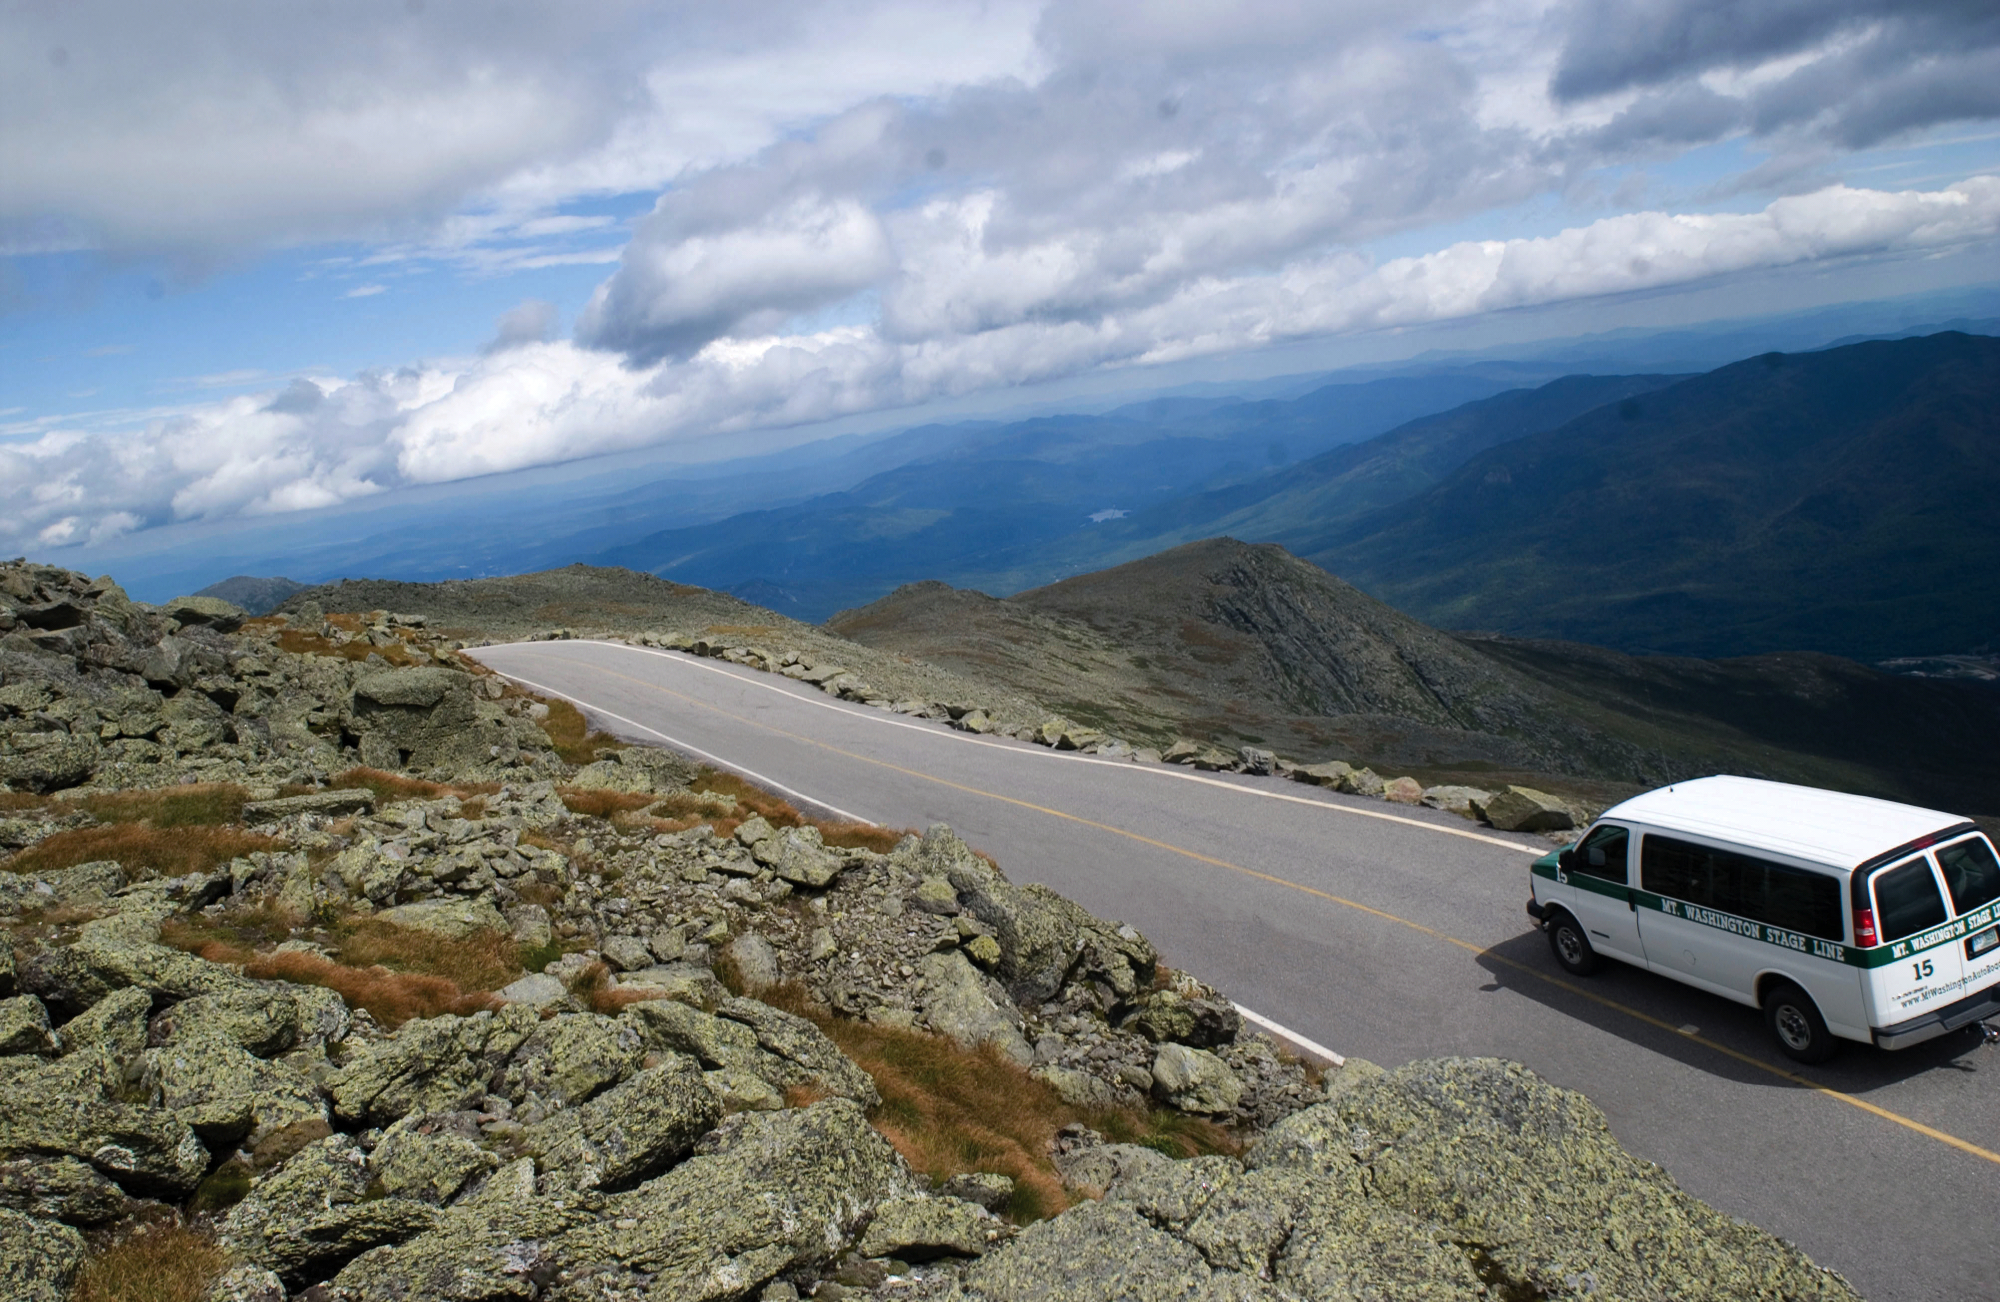 Mt Washington Auto Road >> Mt Washington Auto Road Guided Tour Nh Grand